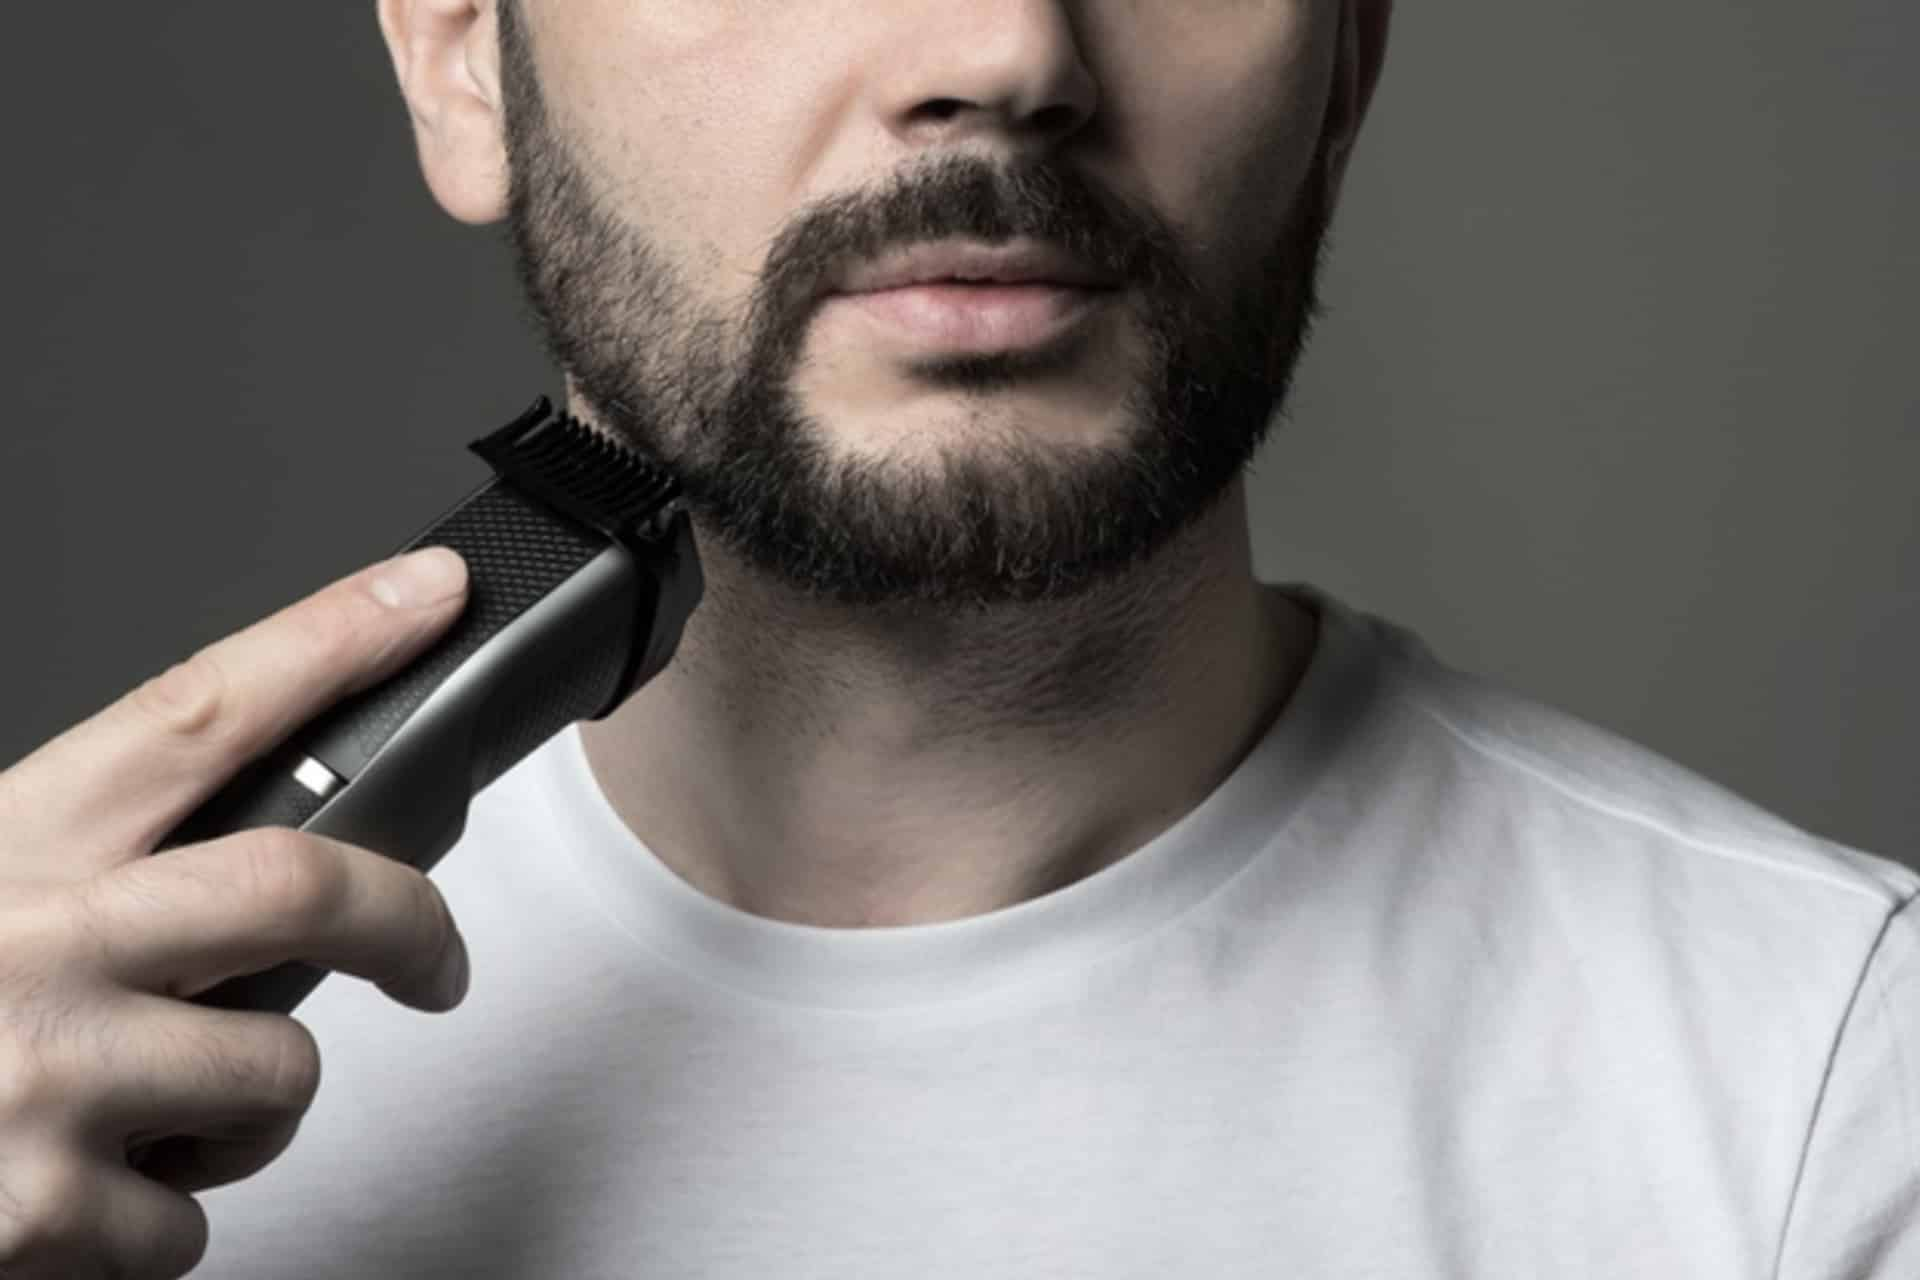 Invest in a quality trimmer